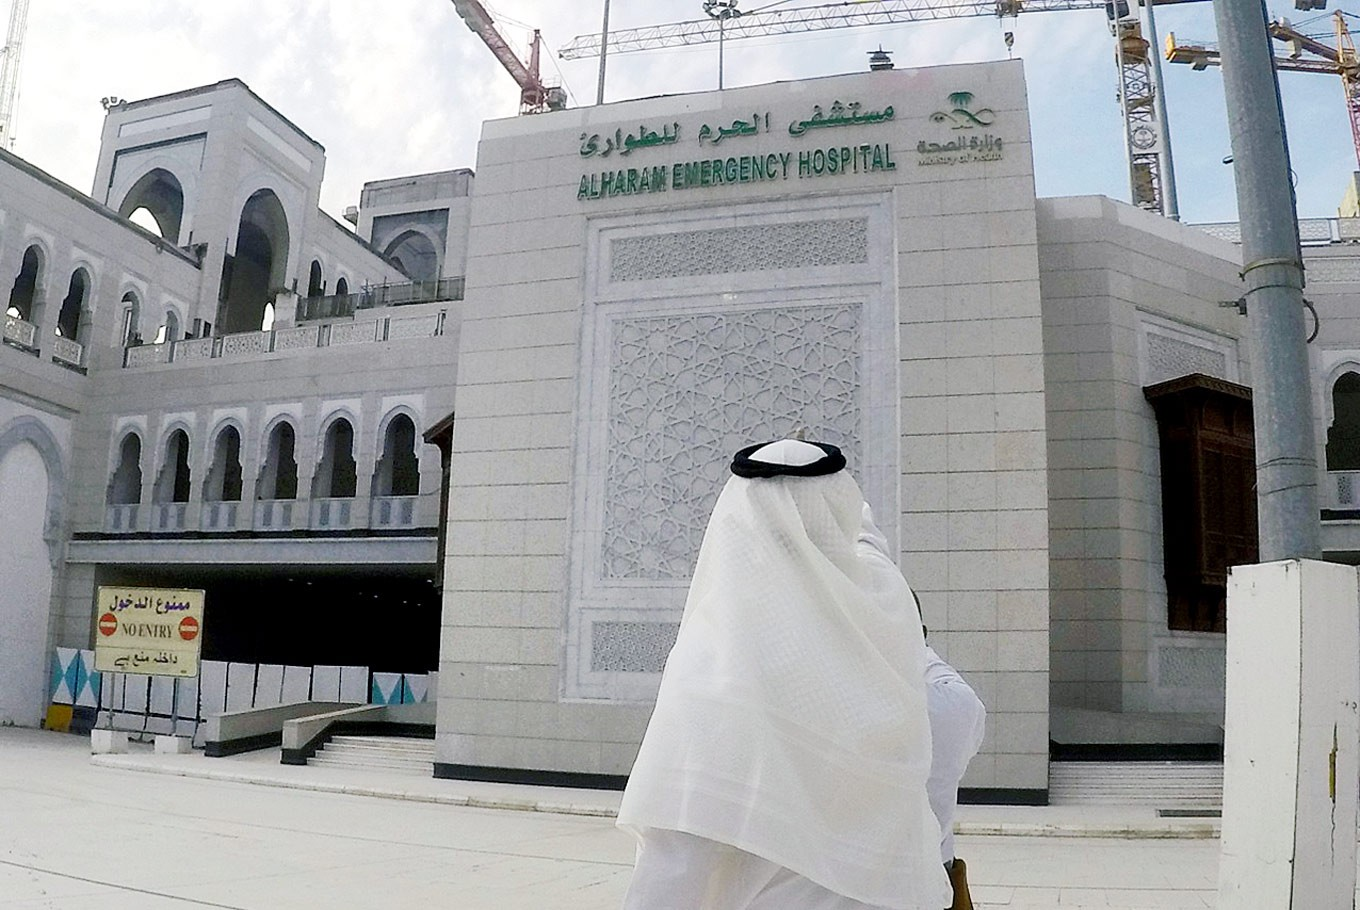 Hospital for pilgrims: A new state-of-the-art and modern hospital is built adjacent to Al-Haram Mosque in Mecca. The free hospital is open for two months of the year to serve pilgrims during the haj.